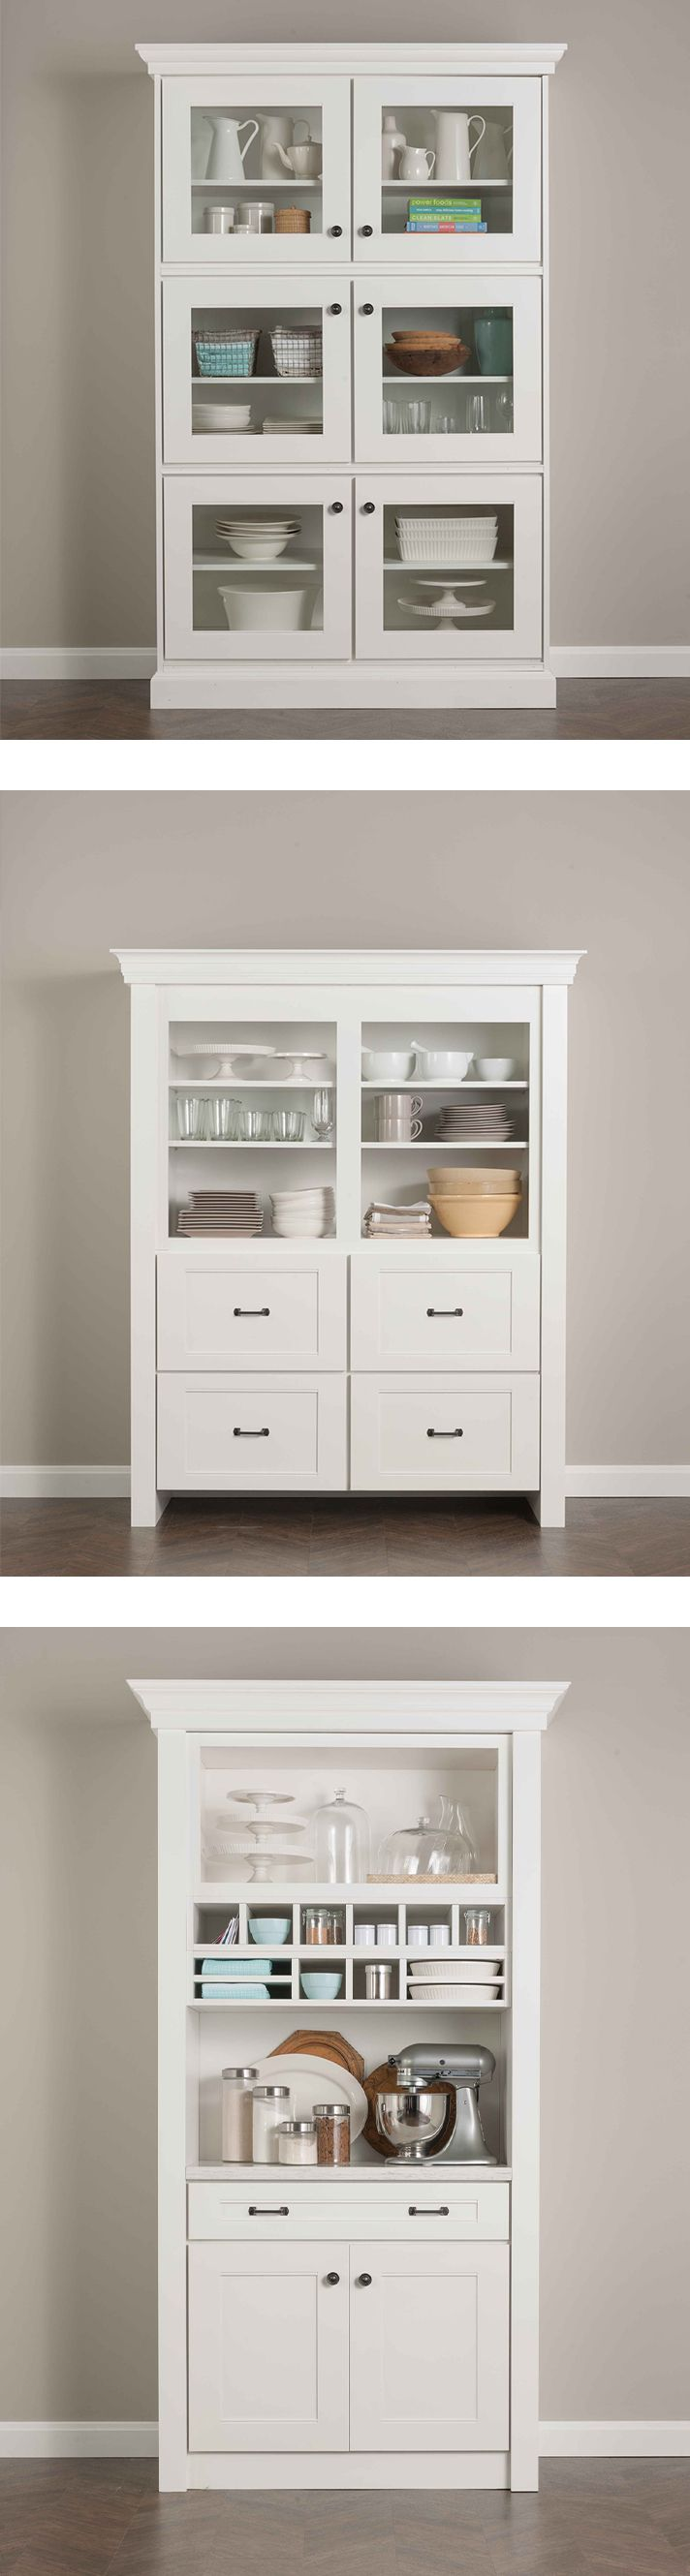 Creative Design Tip: Create standalone pieces, like this hutch, using Martha Stewart Living Kitchen Cabinetry from @homedepot. They have the beauty and detail of finished furniture with plenty of functional storage. Start designing at your nearest store!